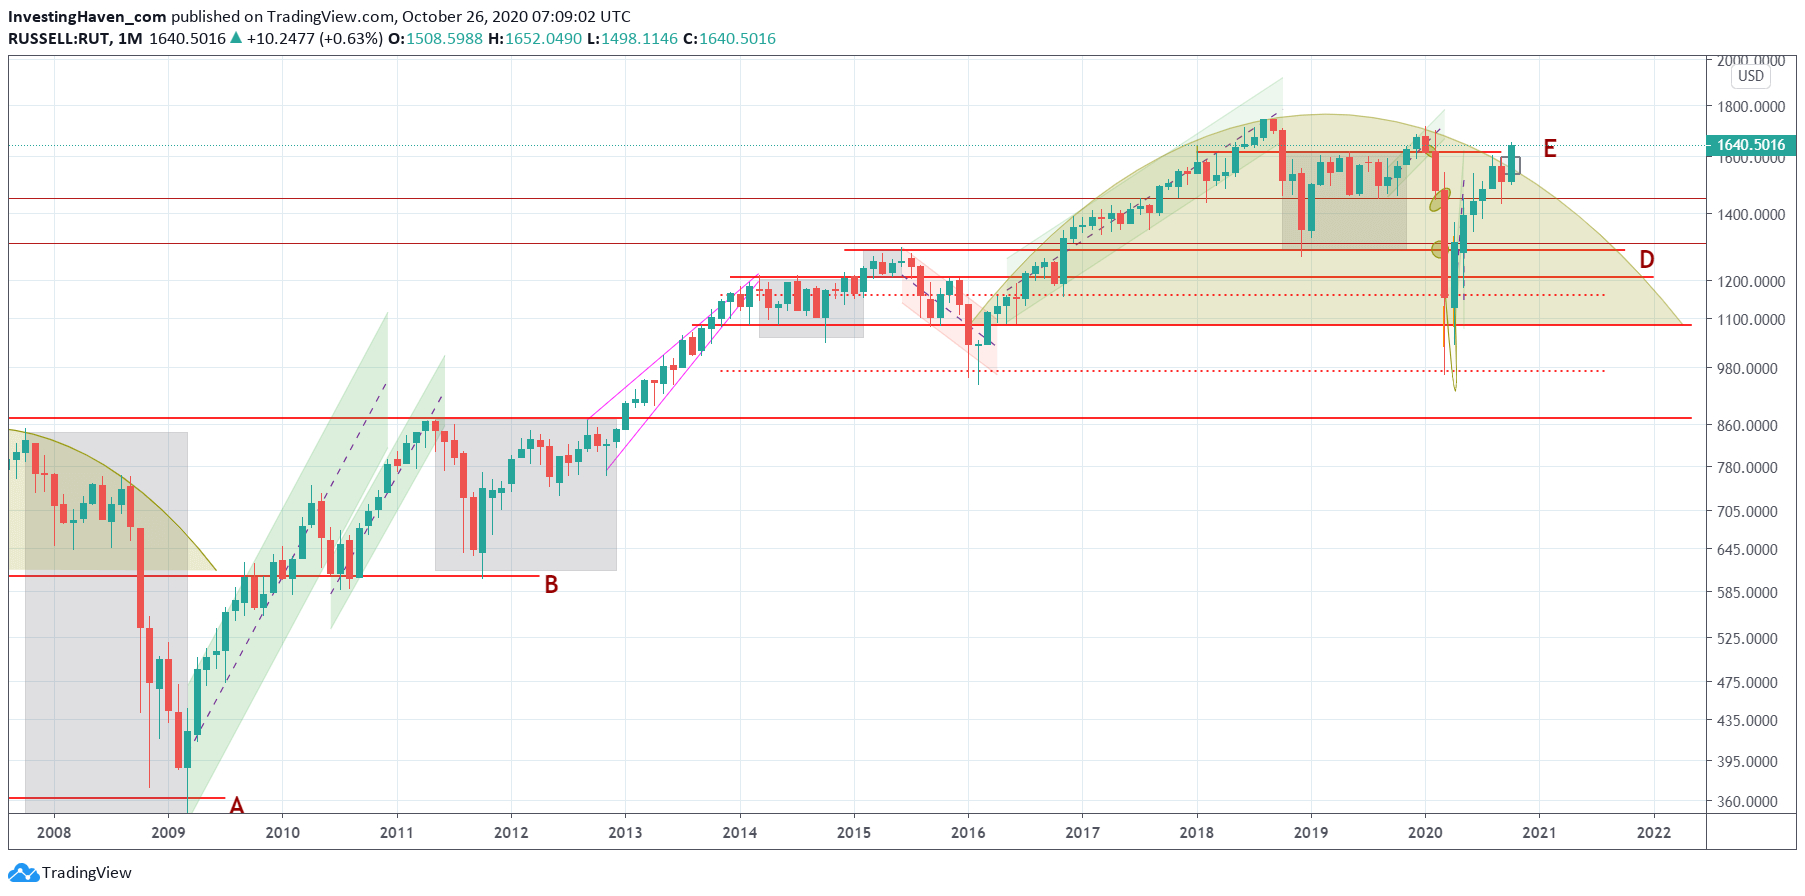 A Dow Jones Forecast For 2021 *New All Time Highs with regard to Rut Forecast 2021